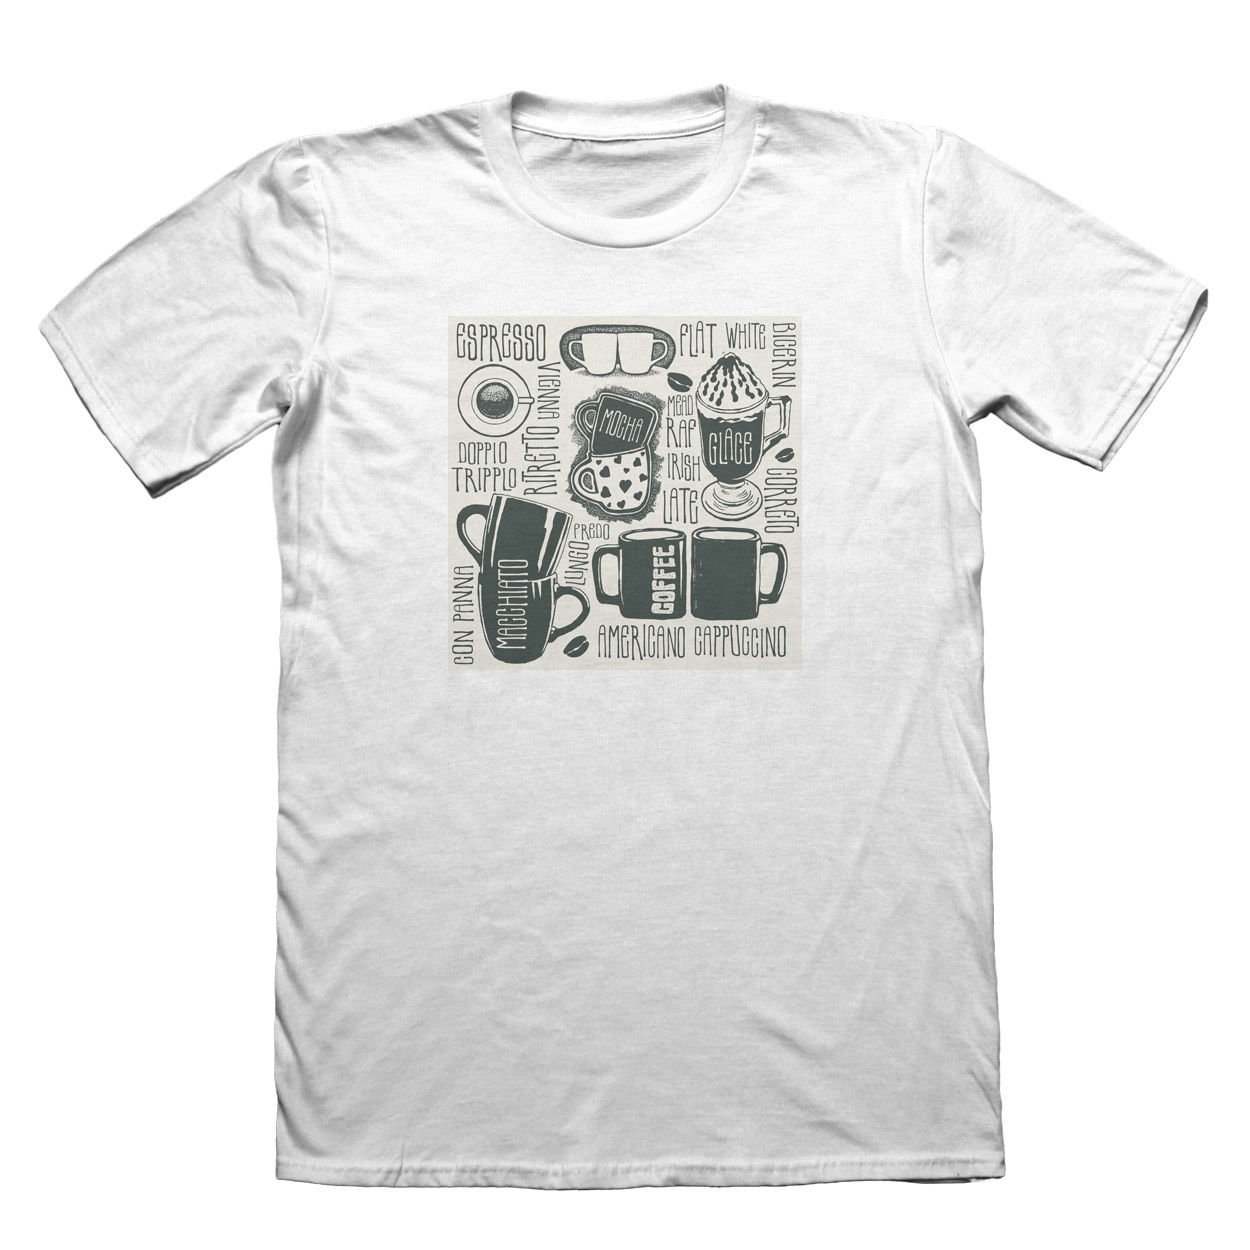 Coffee Shop Americano T-Shirt - Mens Fathers Day Christmas Gift #7422 Casual Printed Tee